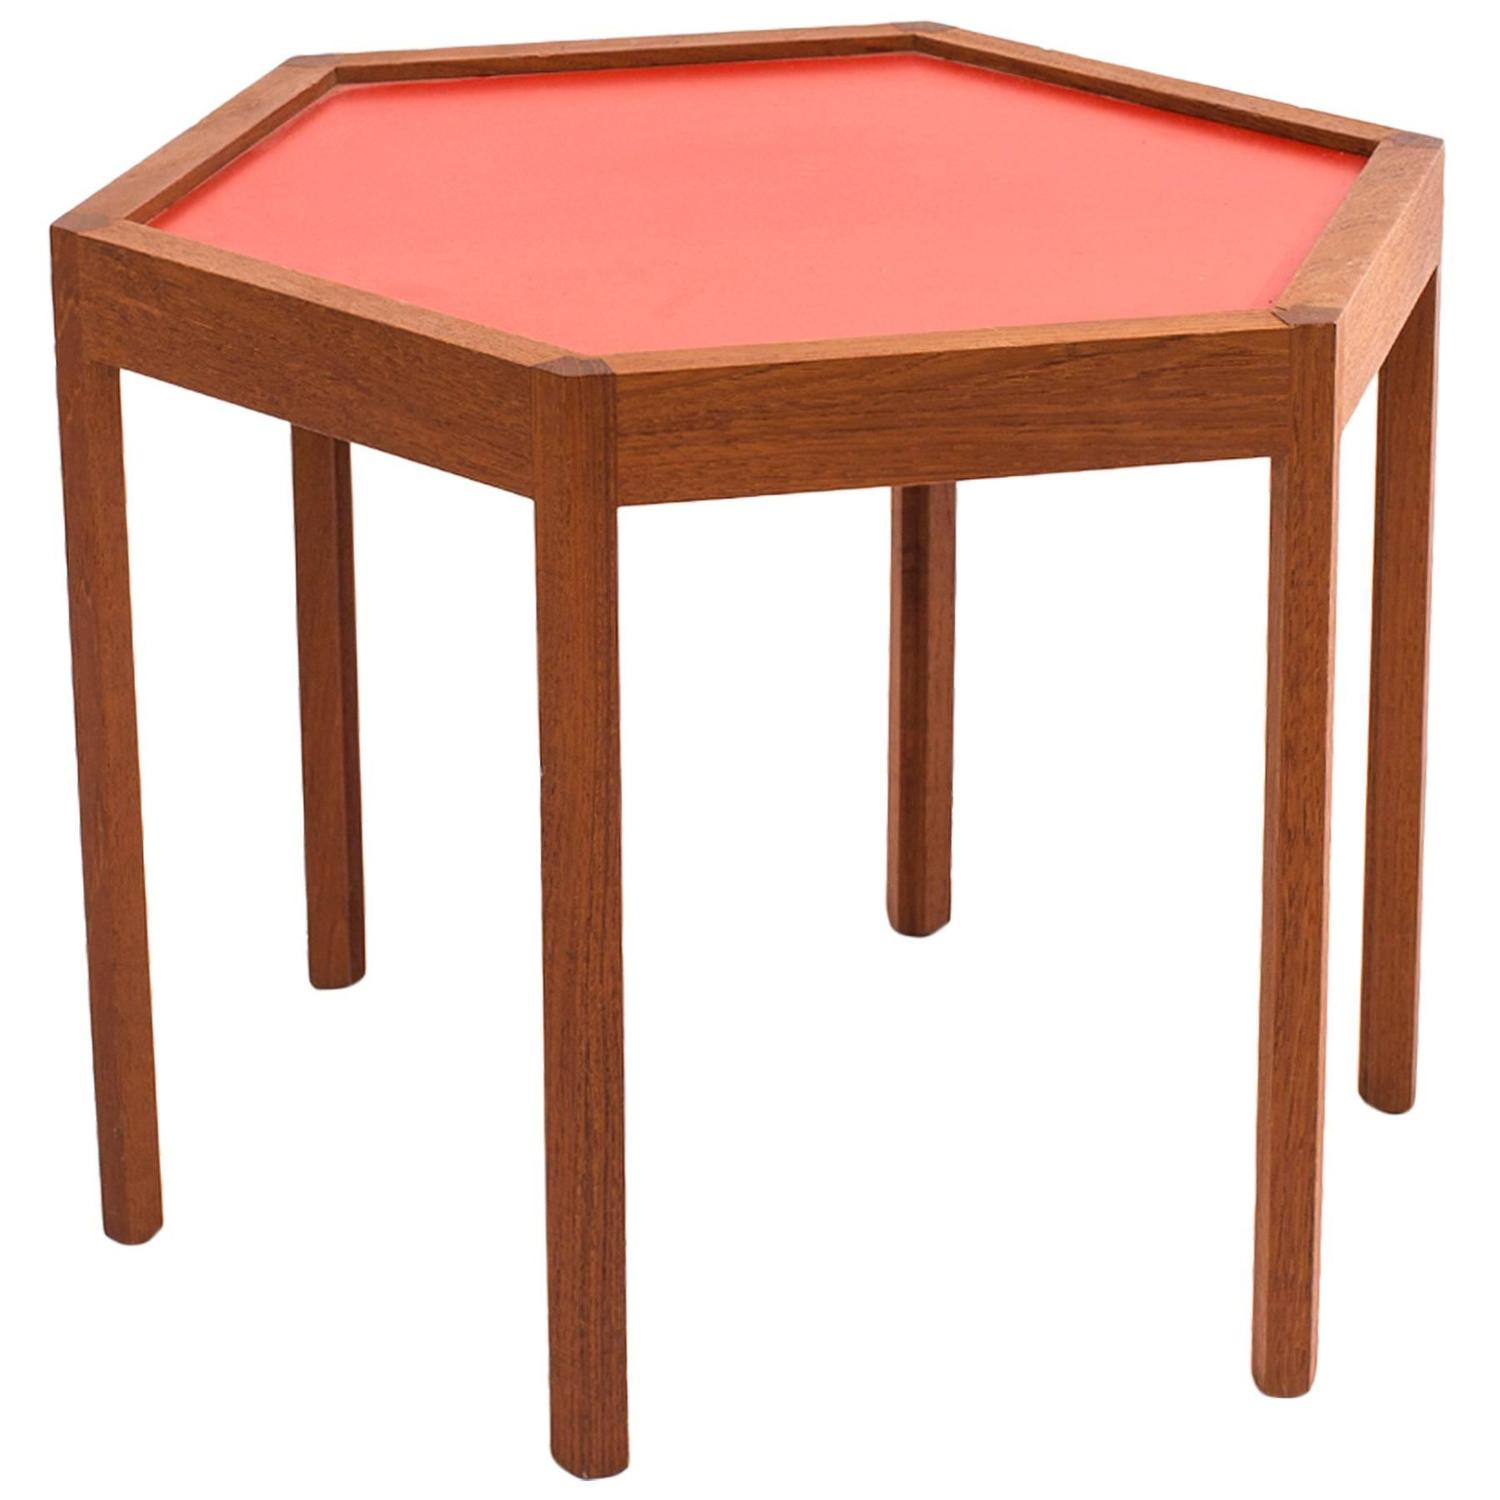 Octagon Side Table ~ Hans c andersen octagonal teak side table at stdibs